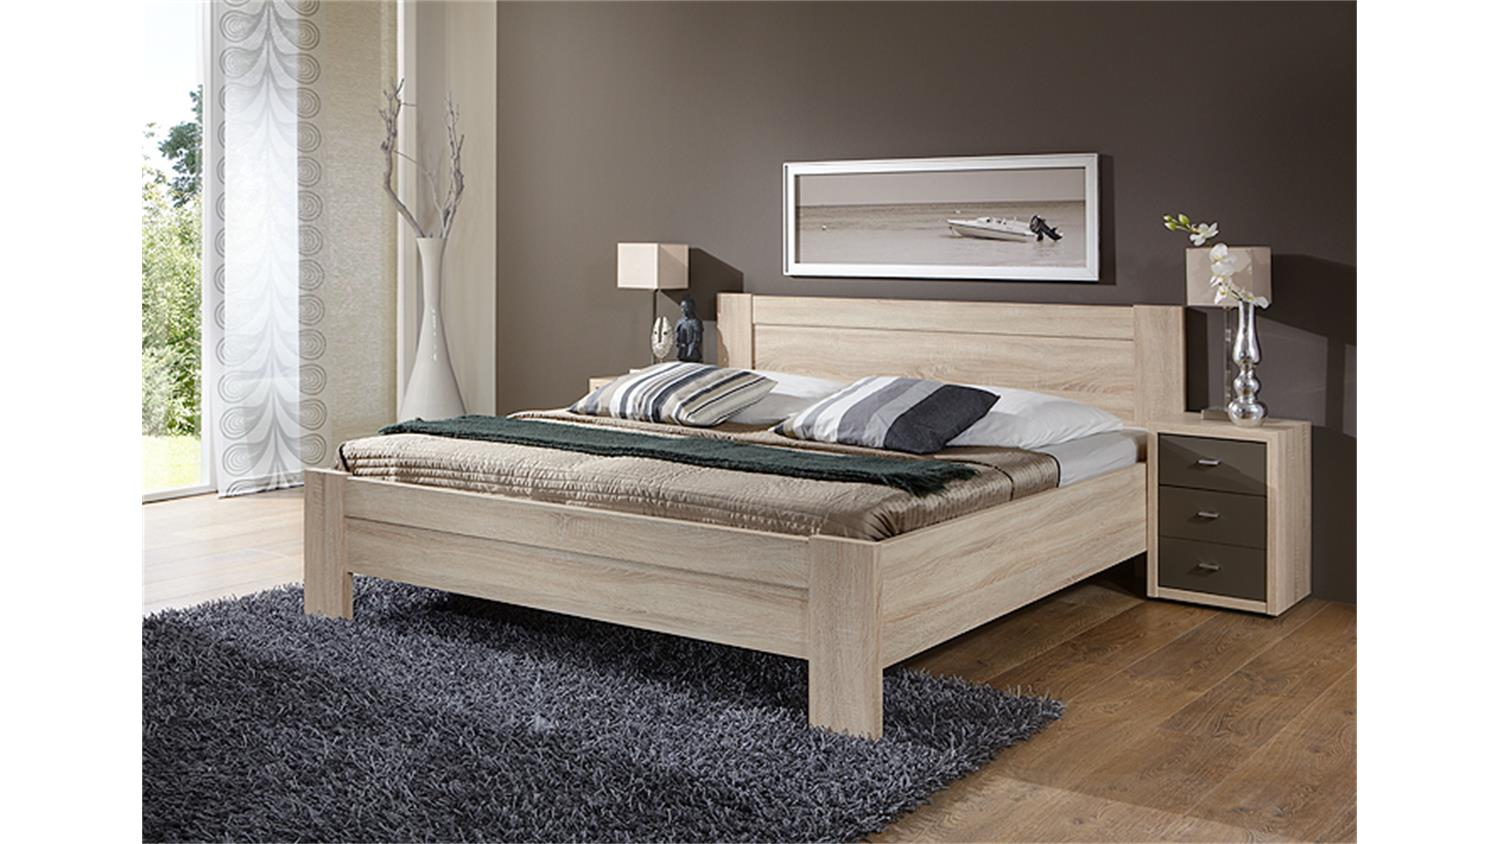 bett donna schlafzimmerbett in eiche s gerau 180x200 cm. Black Bedroom Furniture Sets. Home Design Ideas